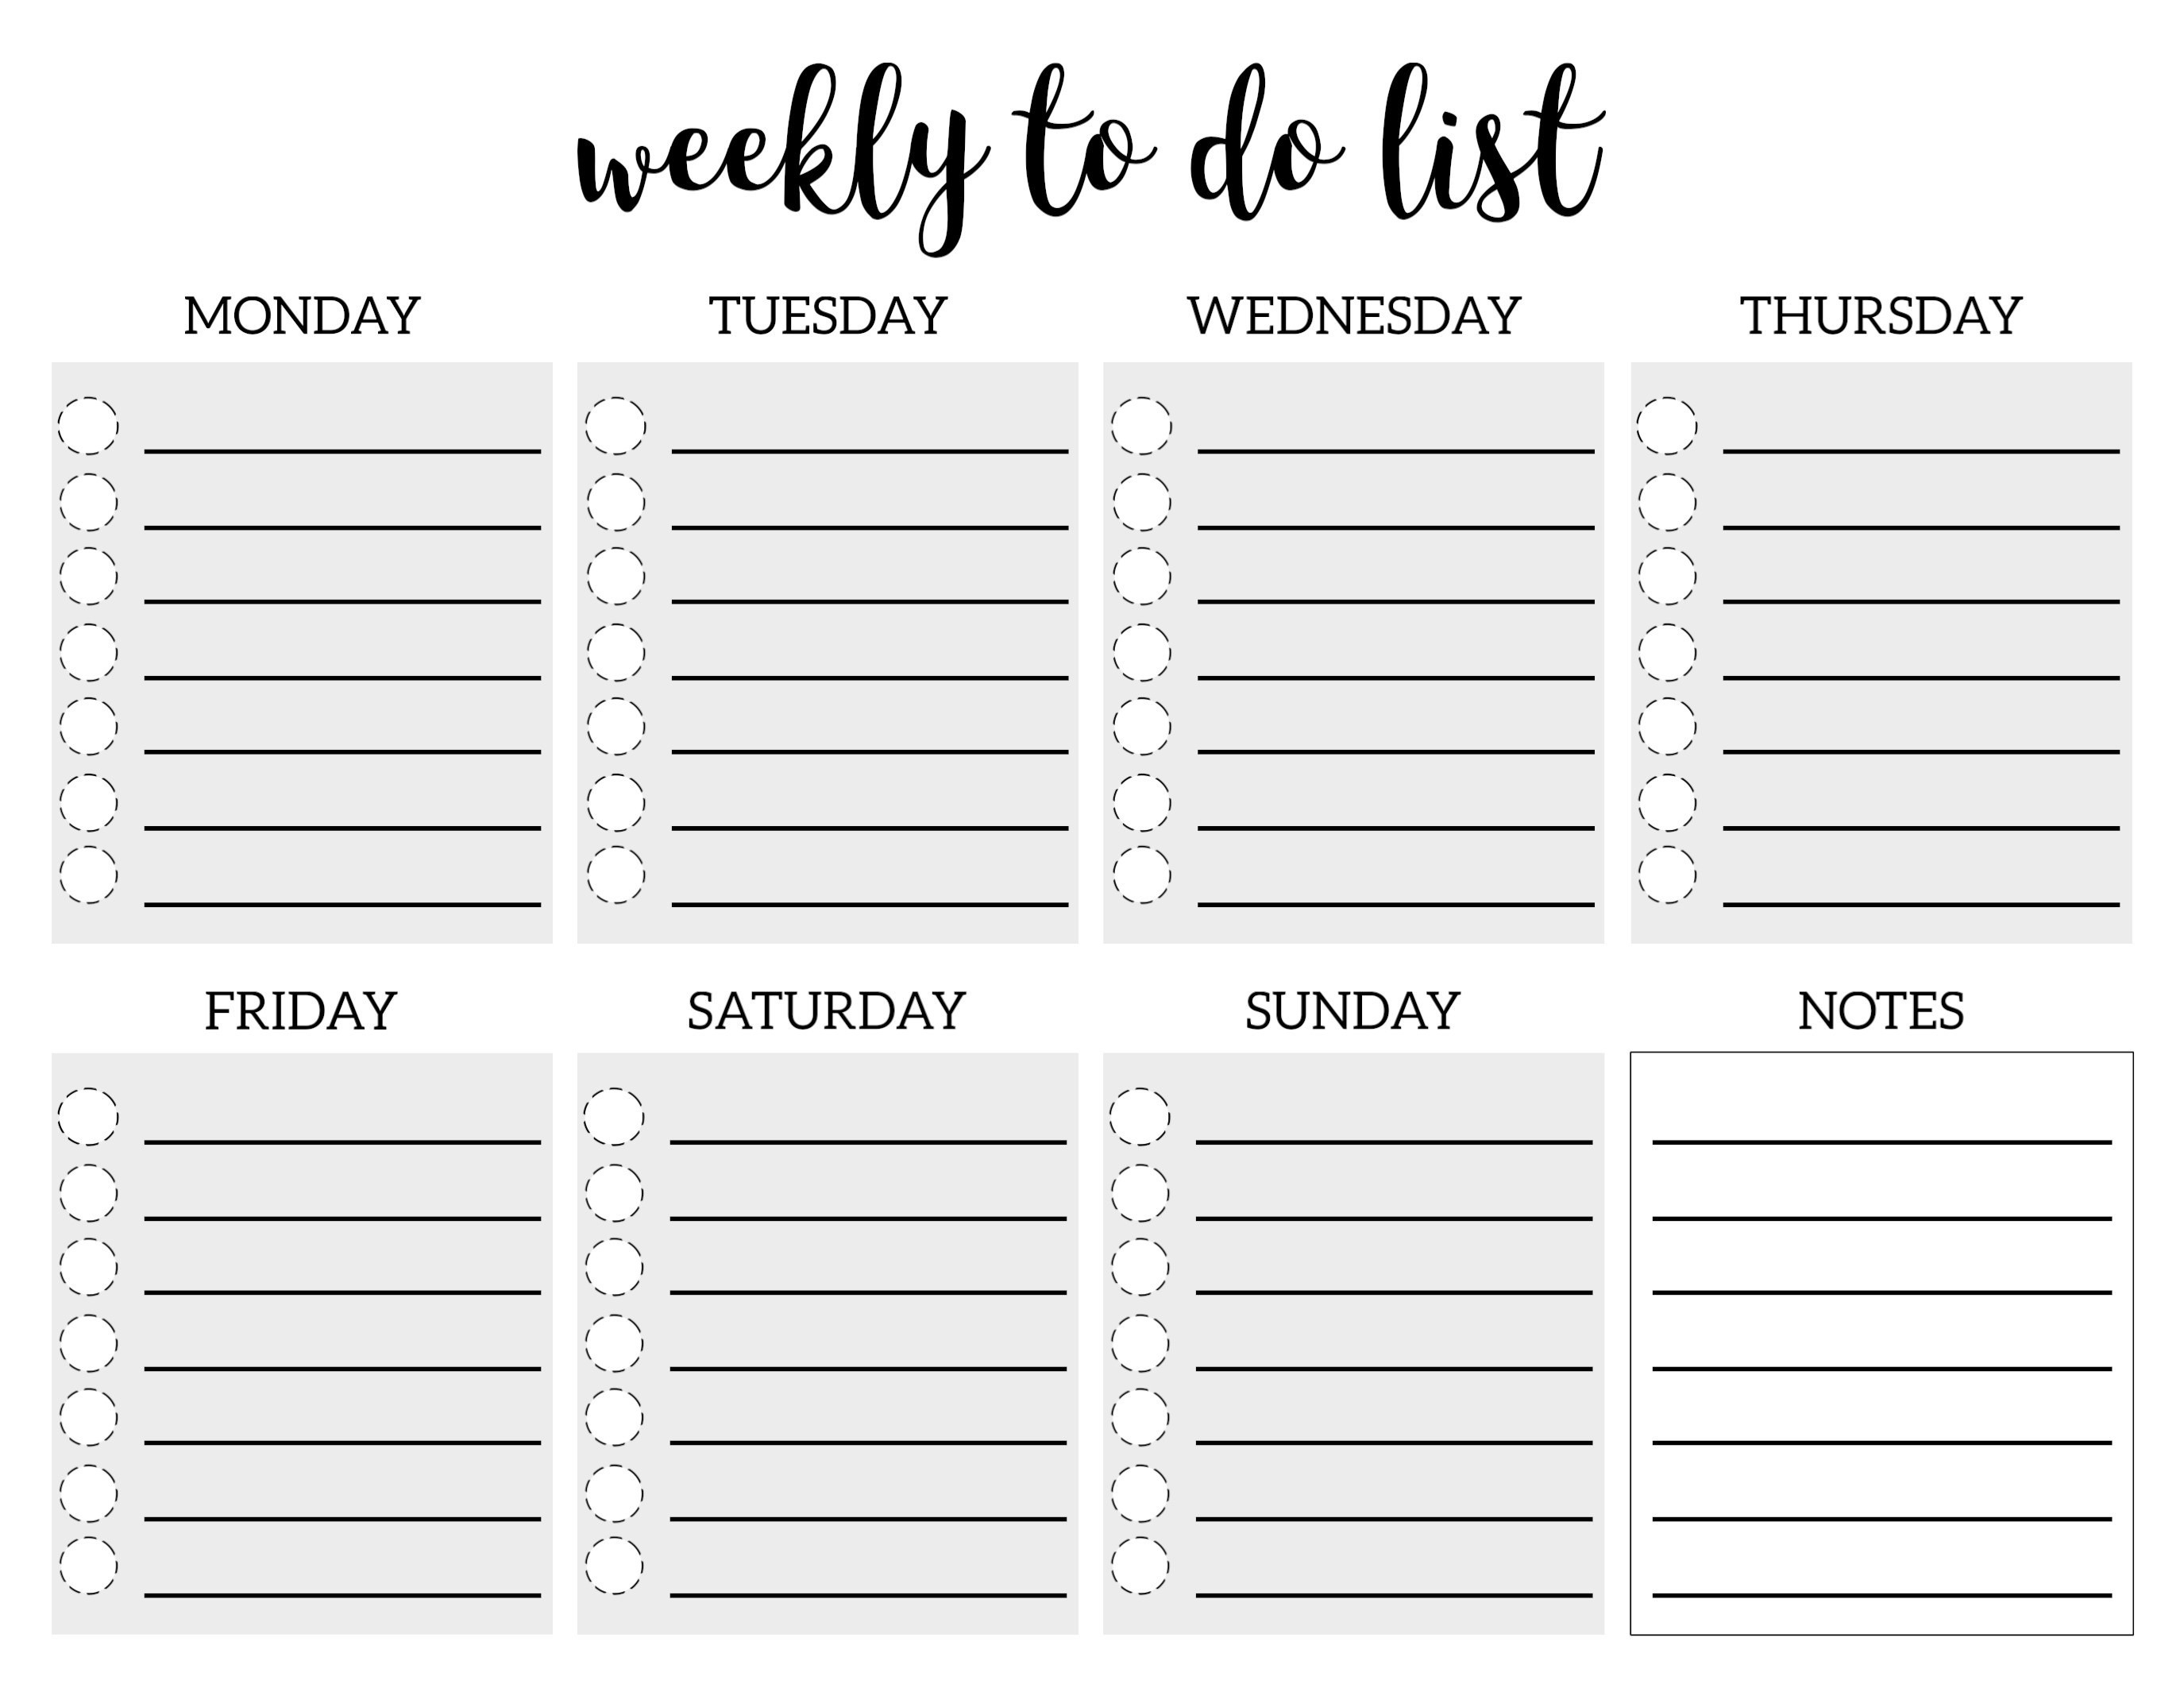 Weekly Checklist Template | World Of Example with regard to Weekly Checklist Template 22054